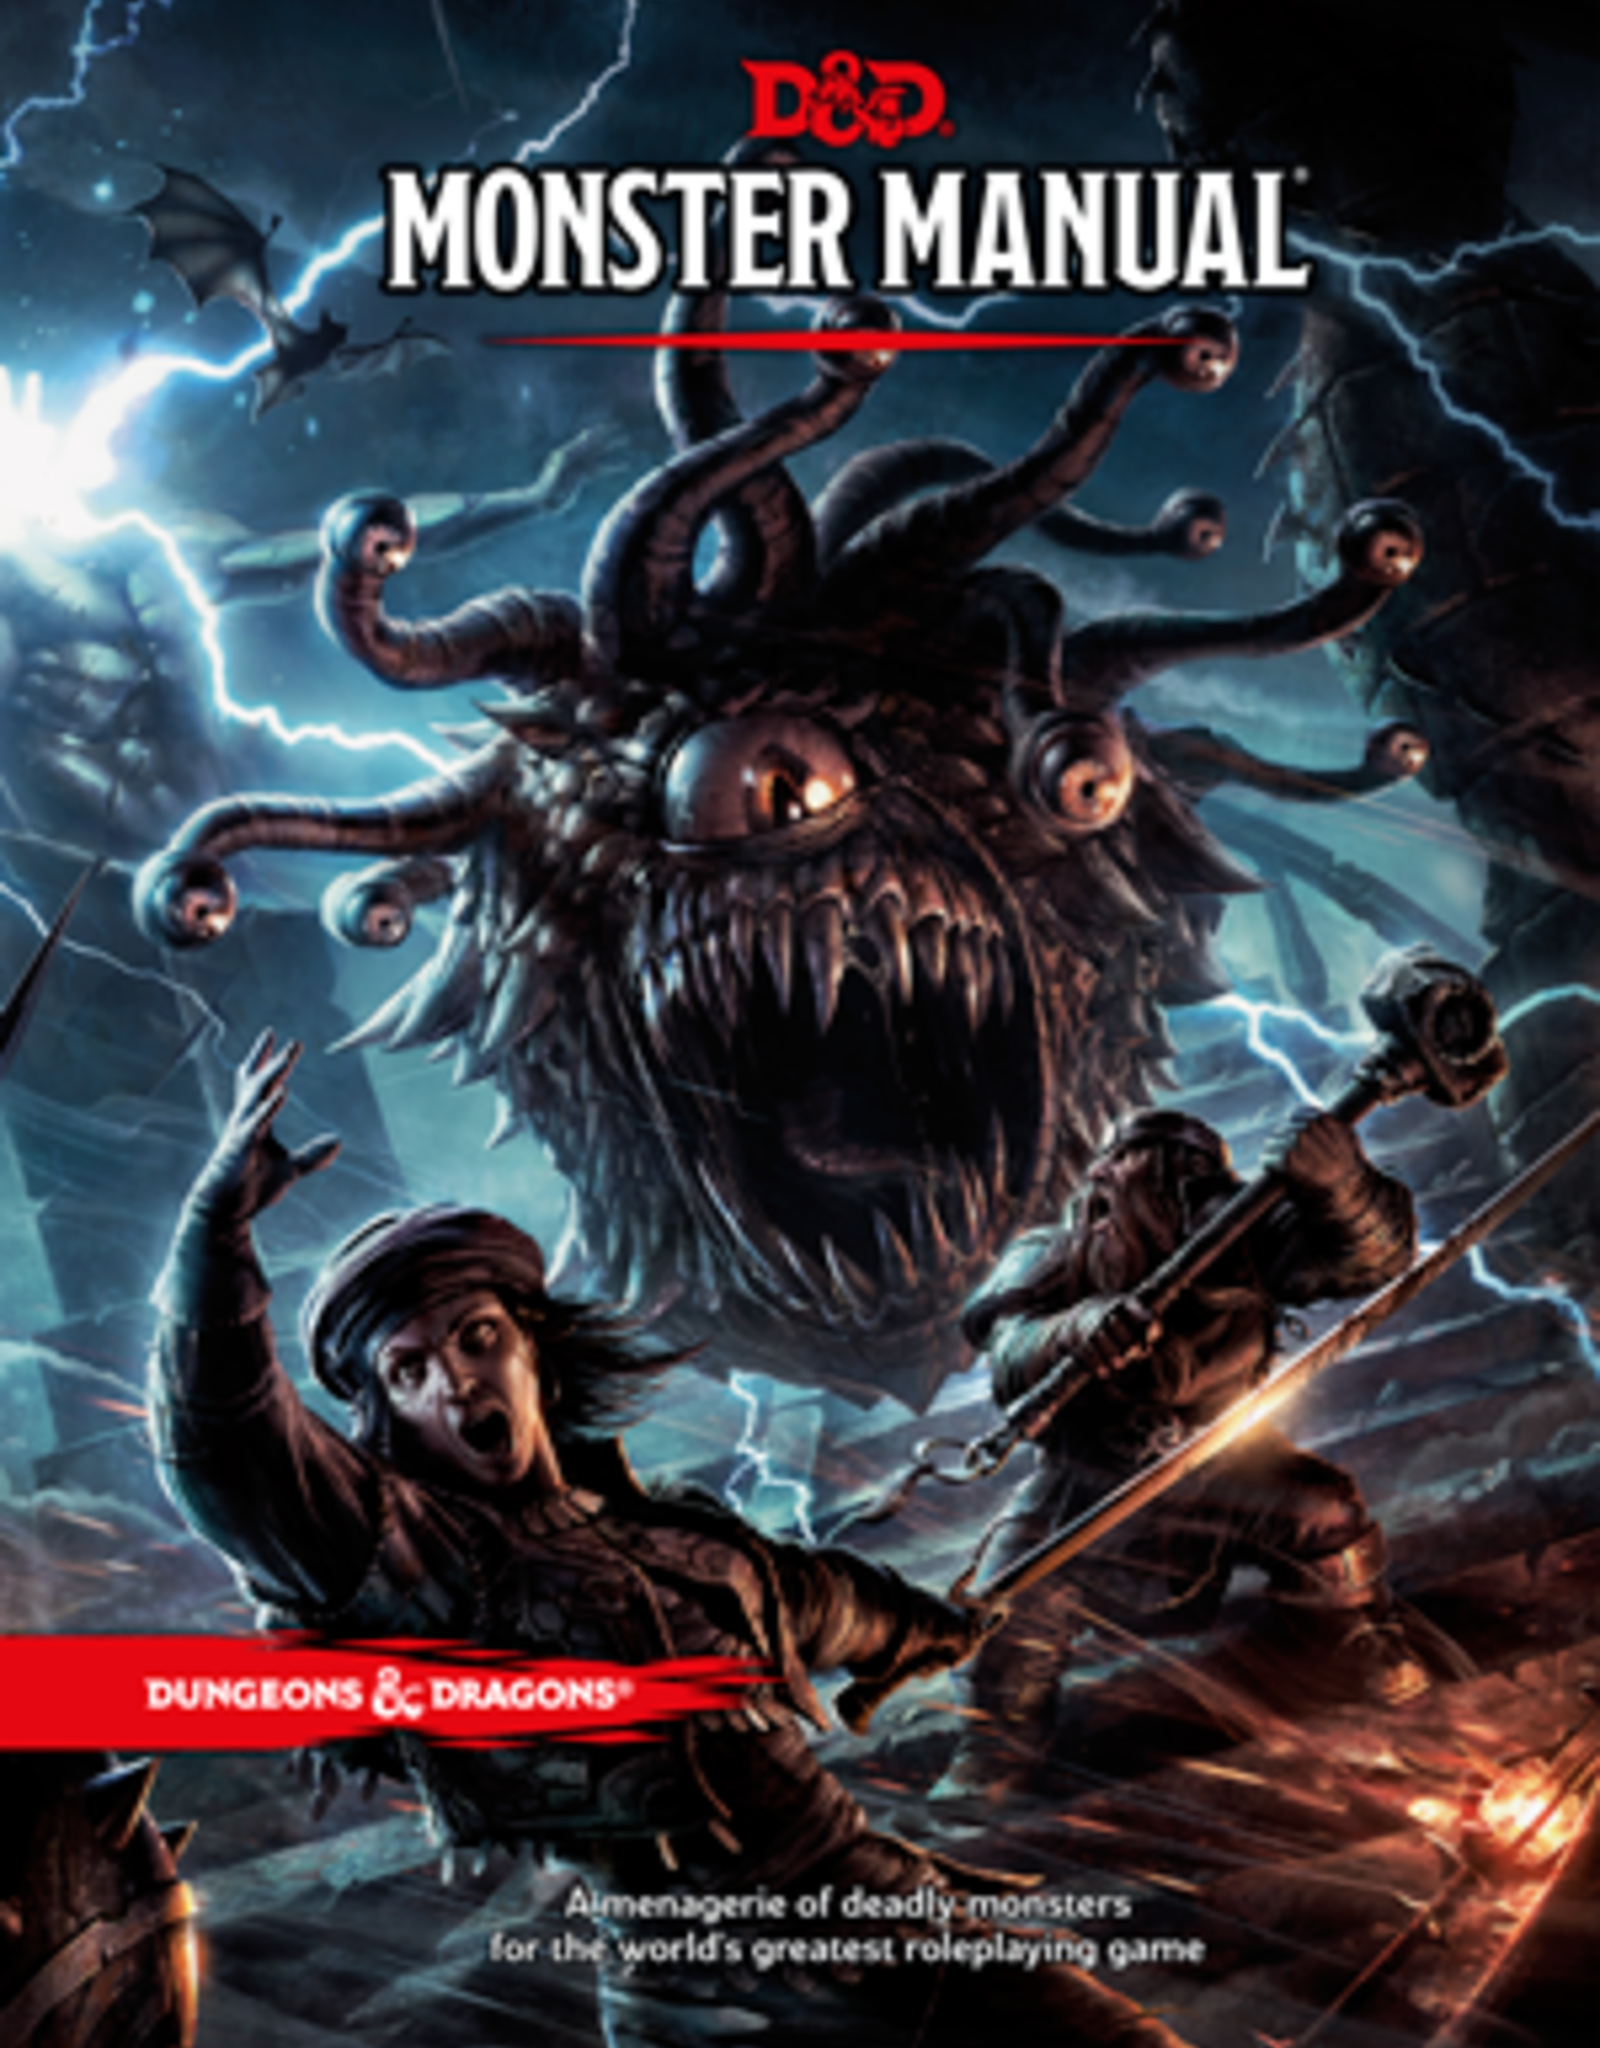 D&D 5th Edition: Monster Manual